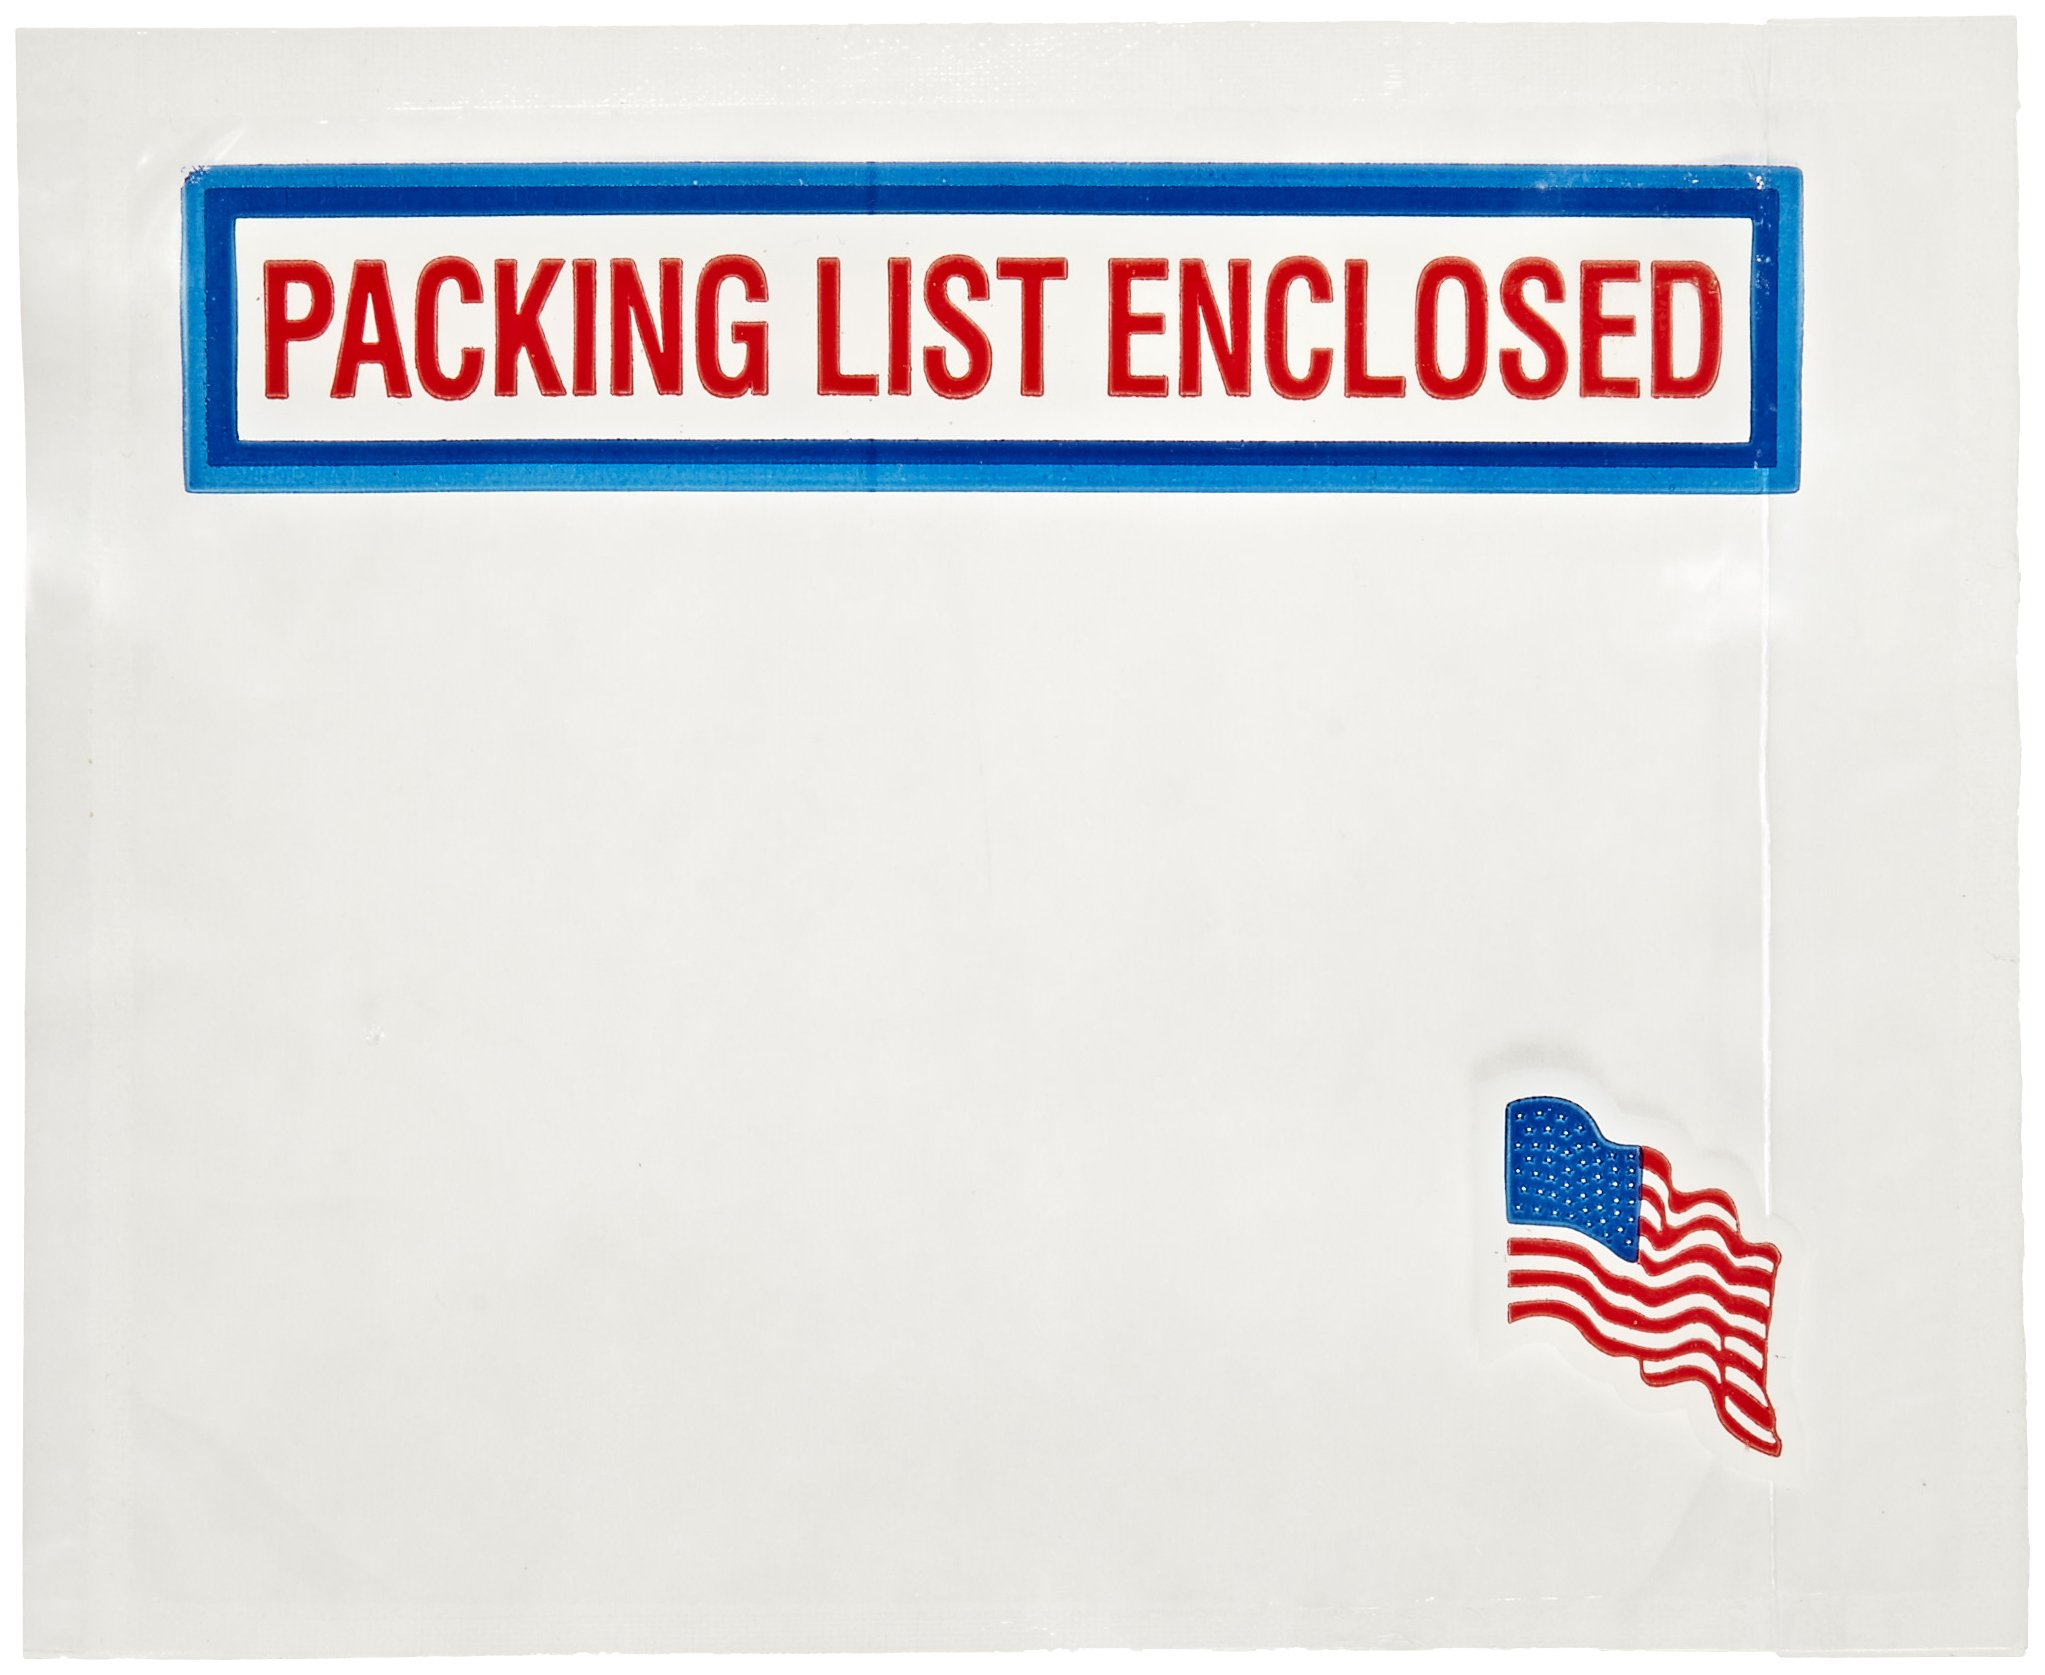 Nifty Products PPE6AF Packing List Envelope, American Flag Imprint ''Packing List Enclosed'', 5-1/2'' Length x 4-1/2'' Width, Red/White/Blue (Case of 1000) by NIFTY